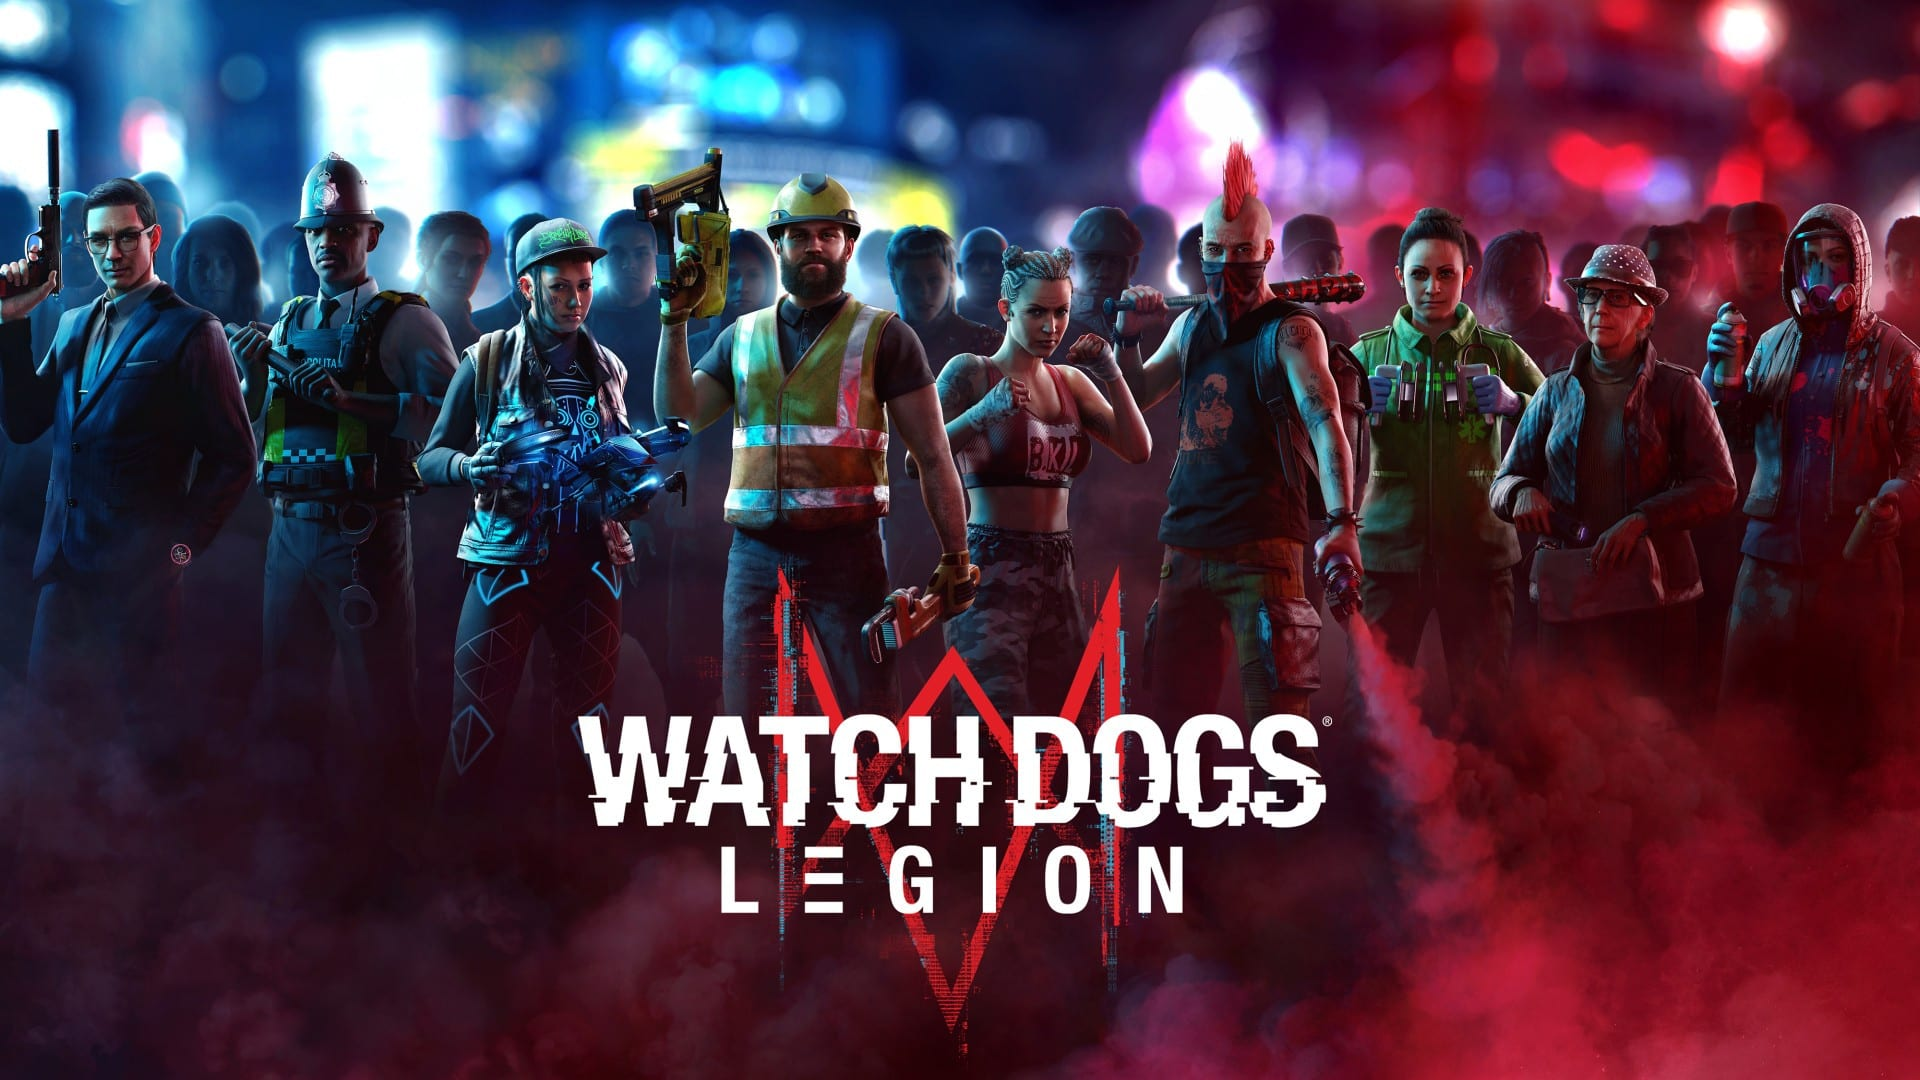 watch dogs legion, voice cast